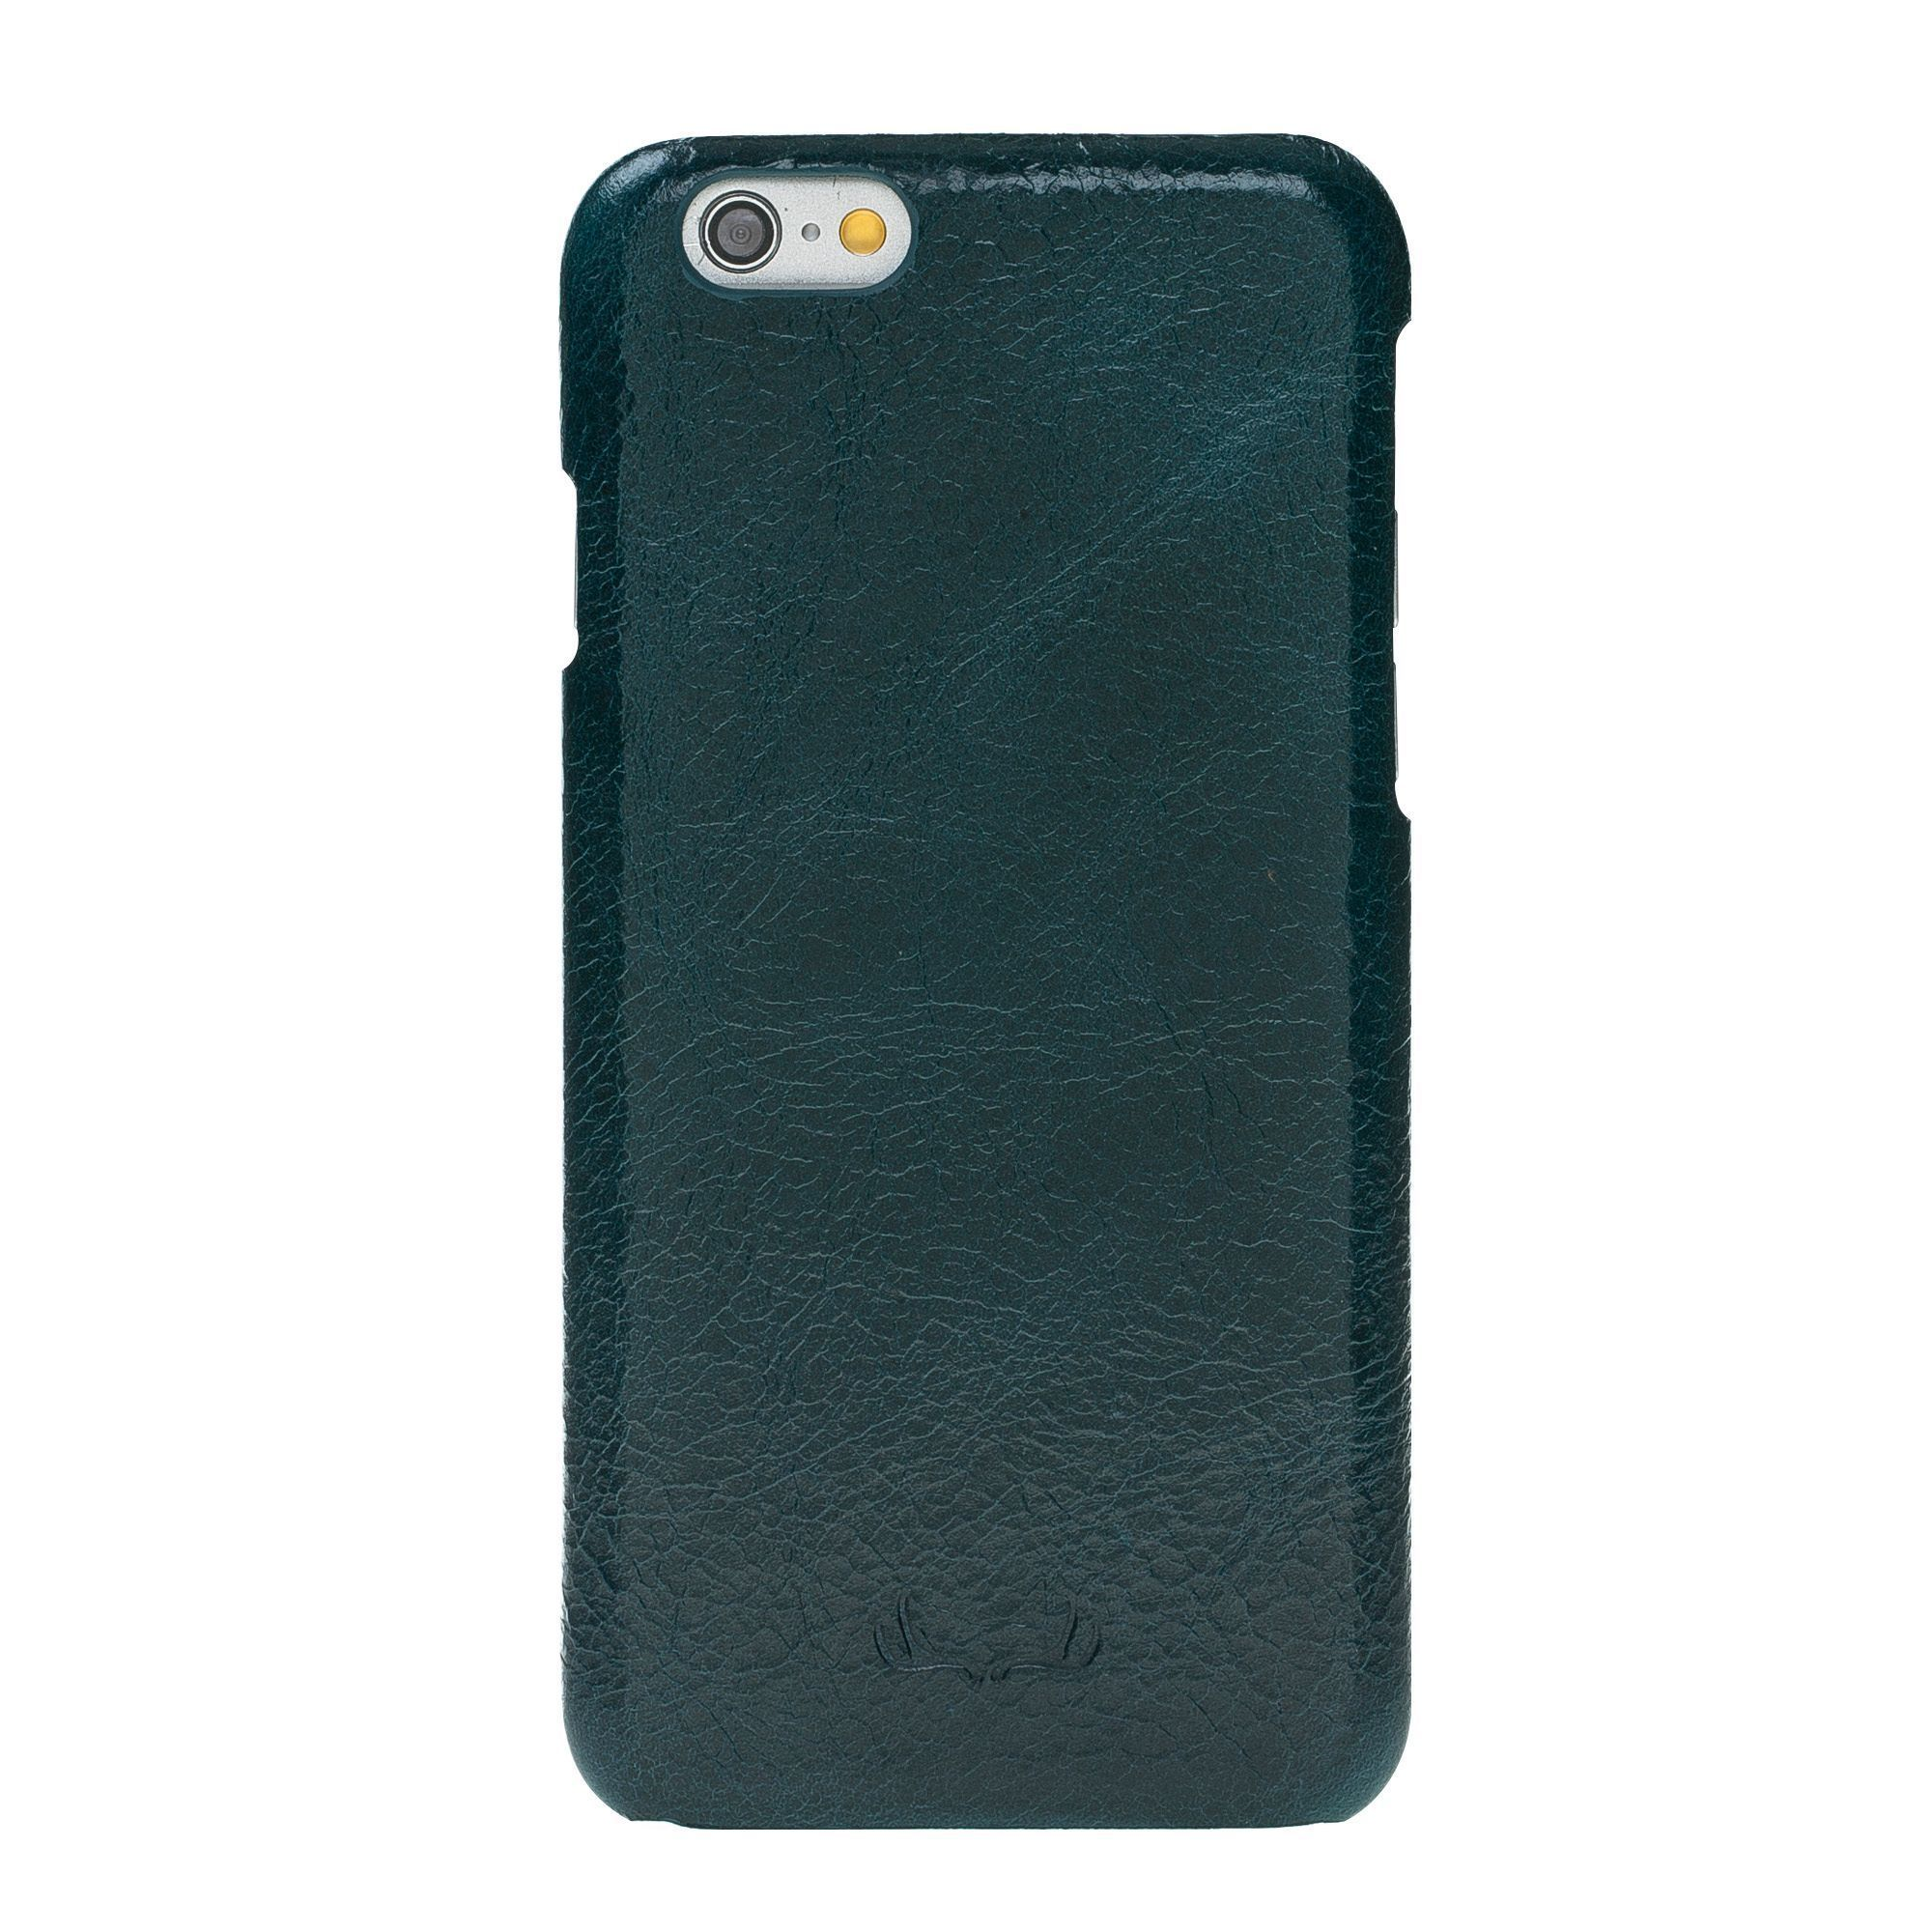 BNT Ultimate Jacket Leather Cases - Vessel - iPhone 6/6S - Blue